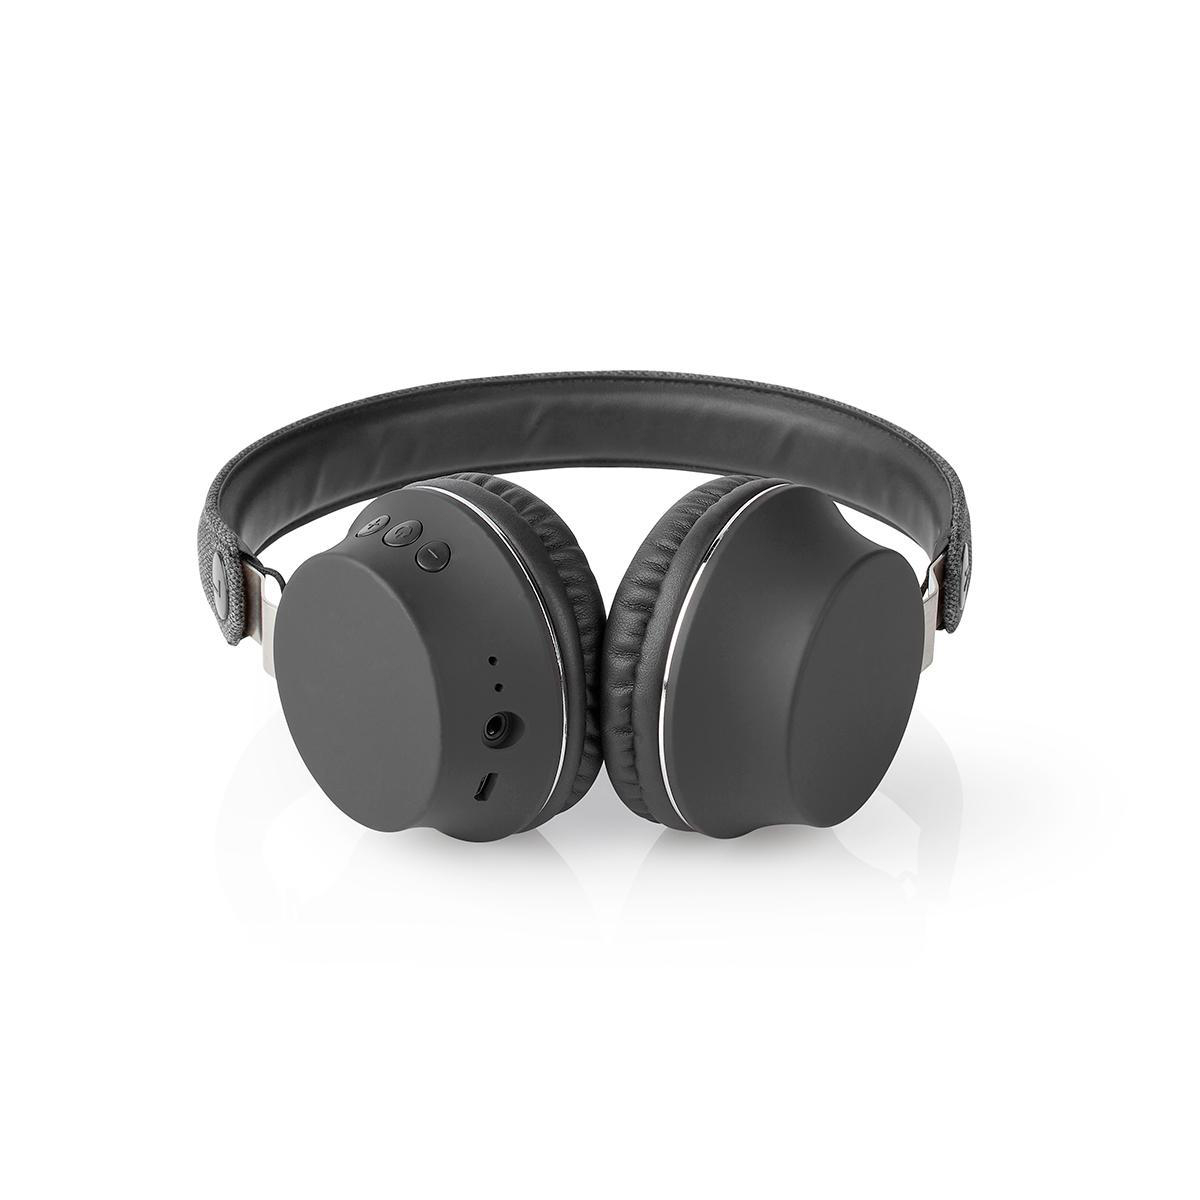 Bluetooth® Koptelefoon met Geweven Stof Bekleed | On Ear |18